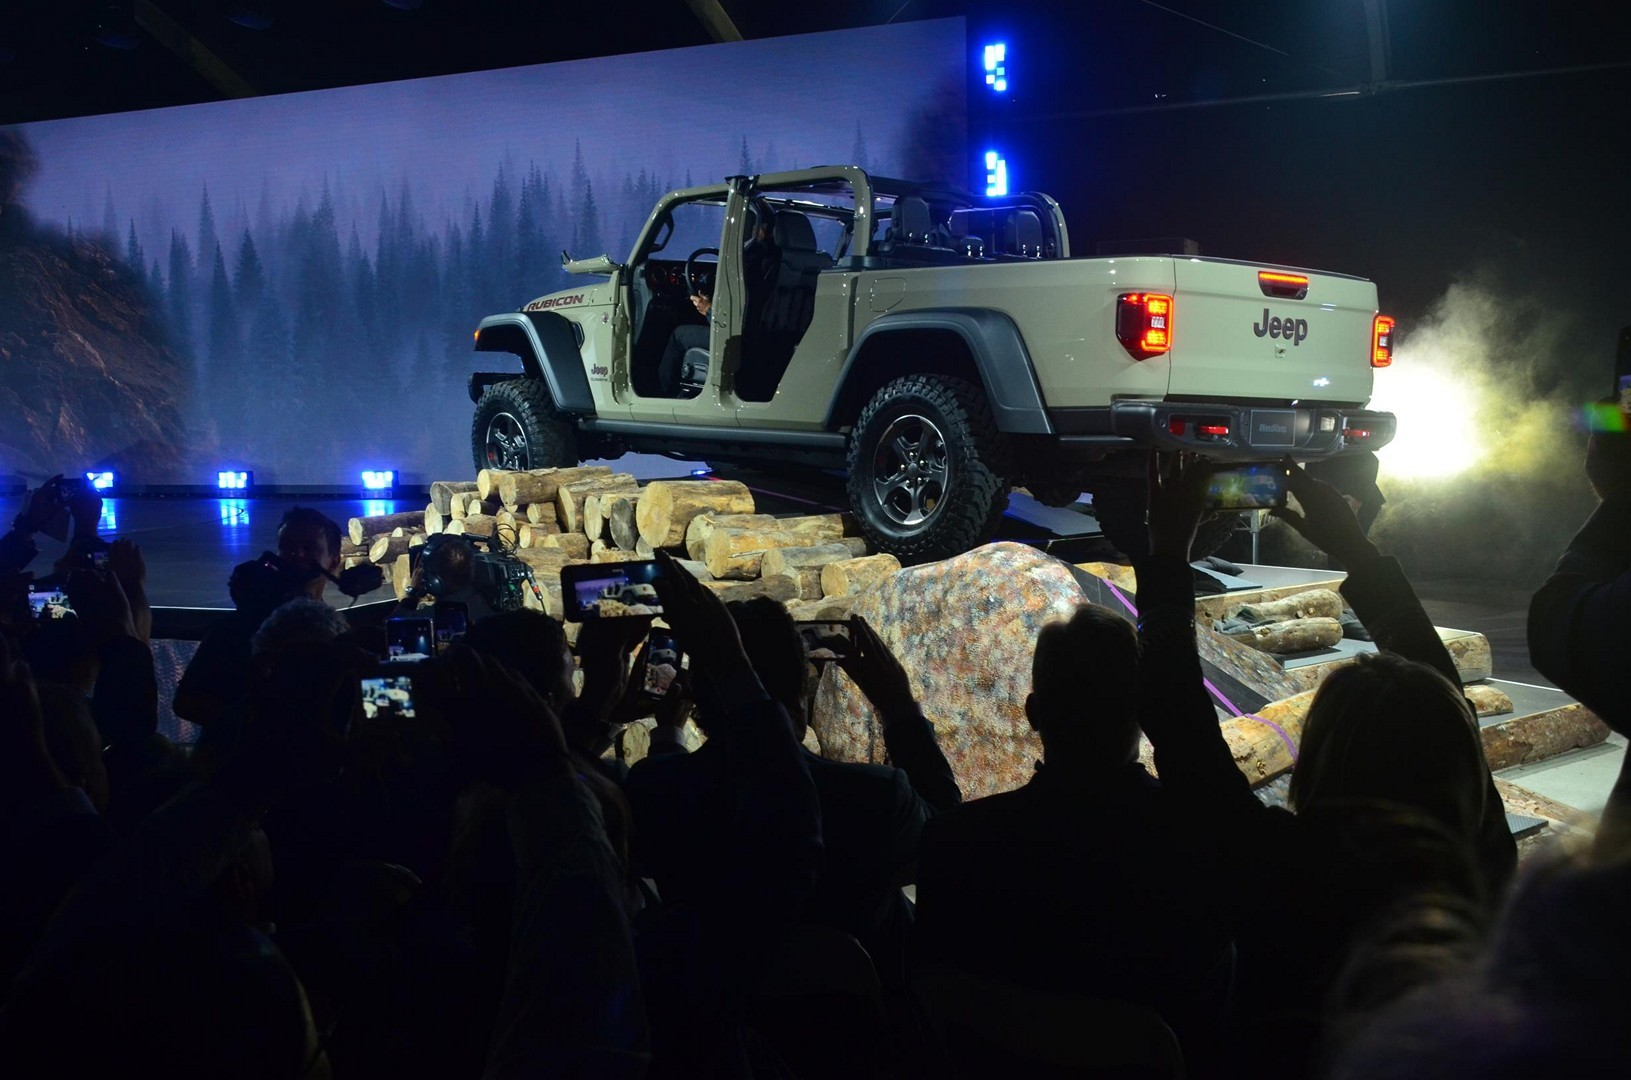 2020 Jeep Gladiator Looks Impressive At The La Auto Show